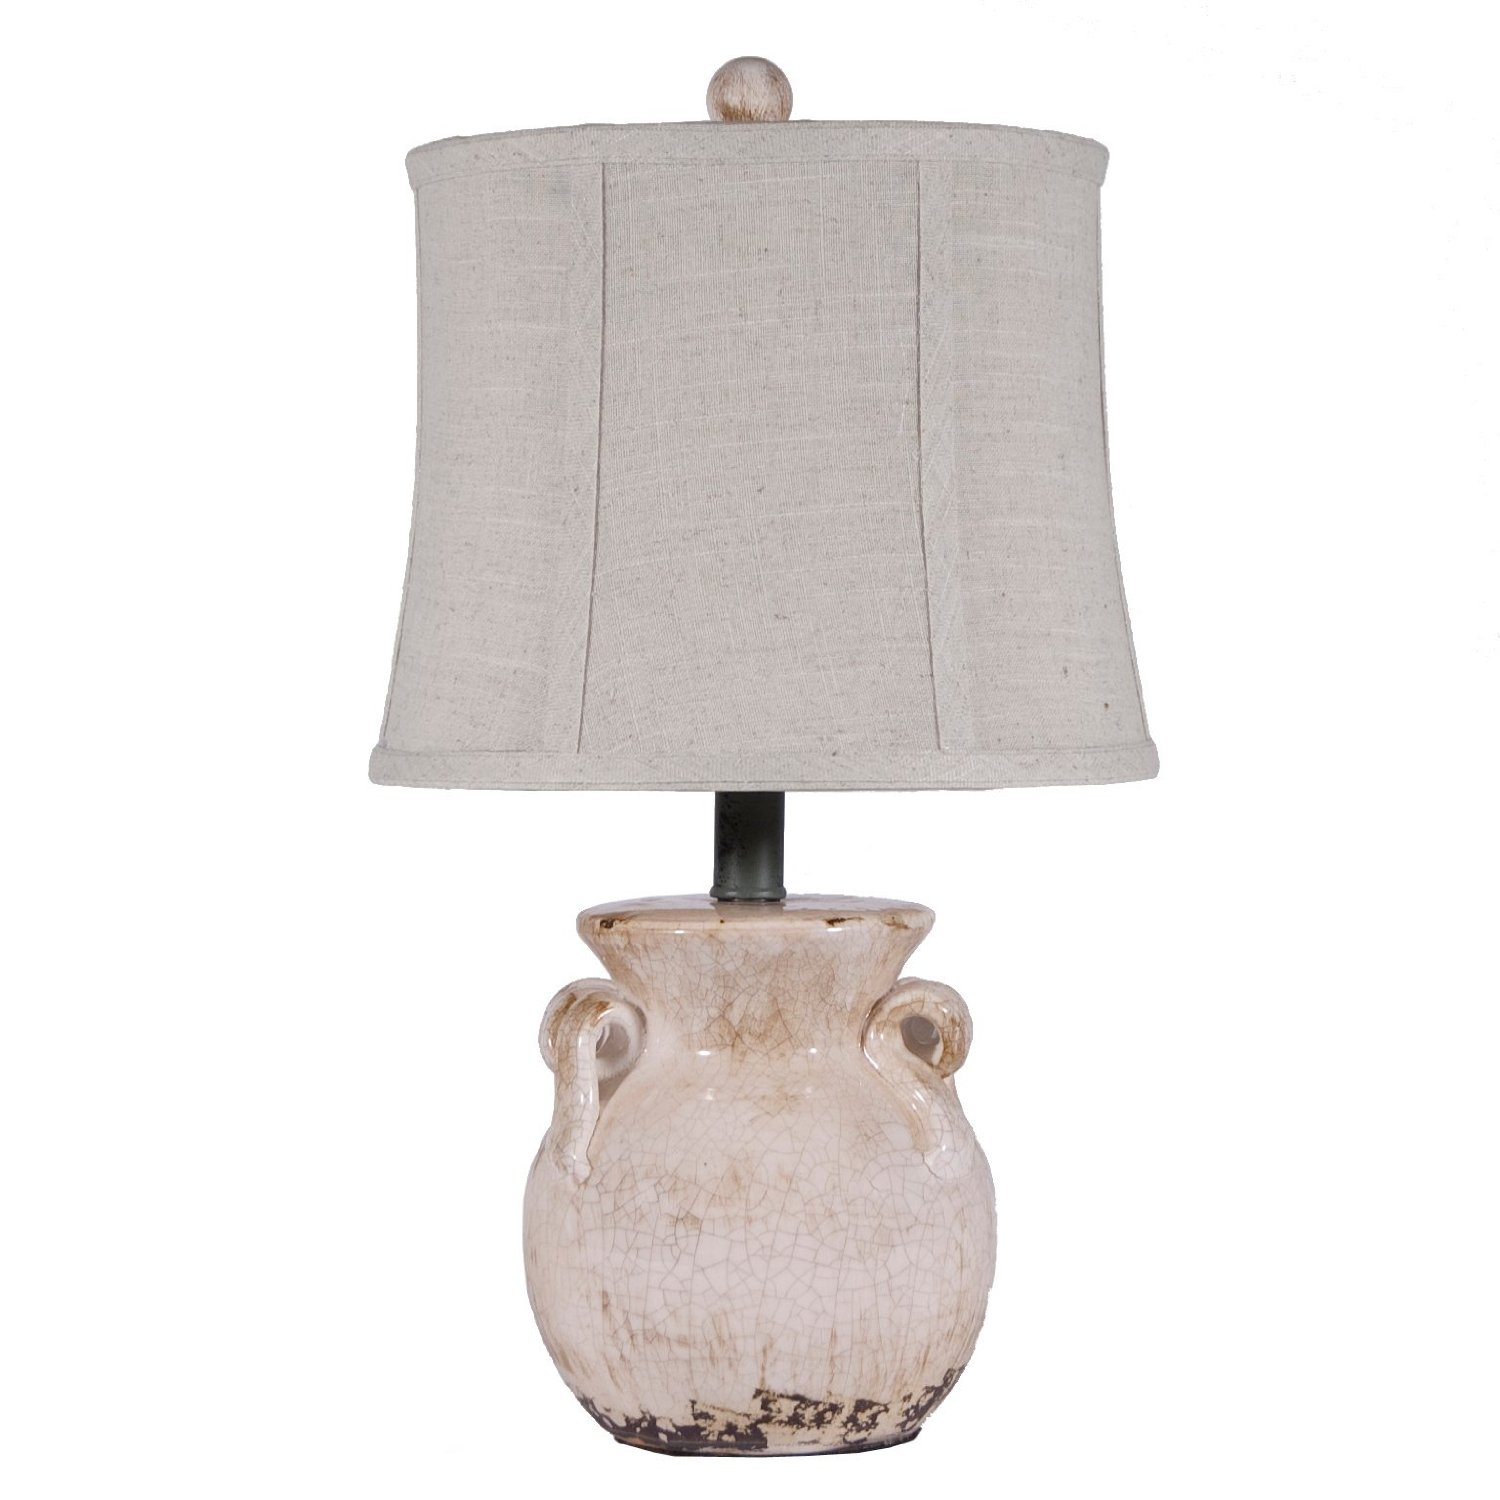 shebby-chic-lamp-accsrs24